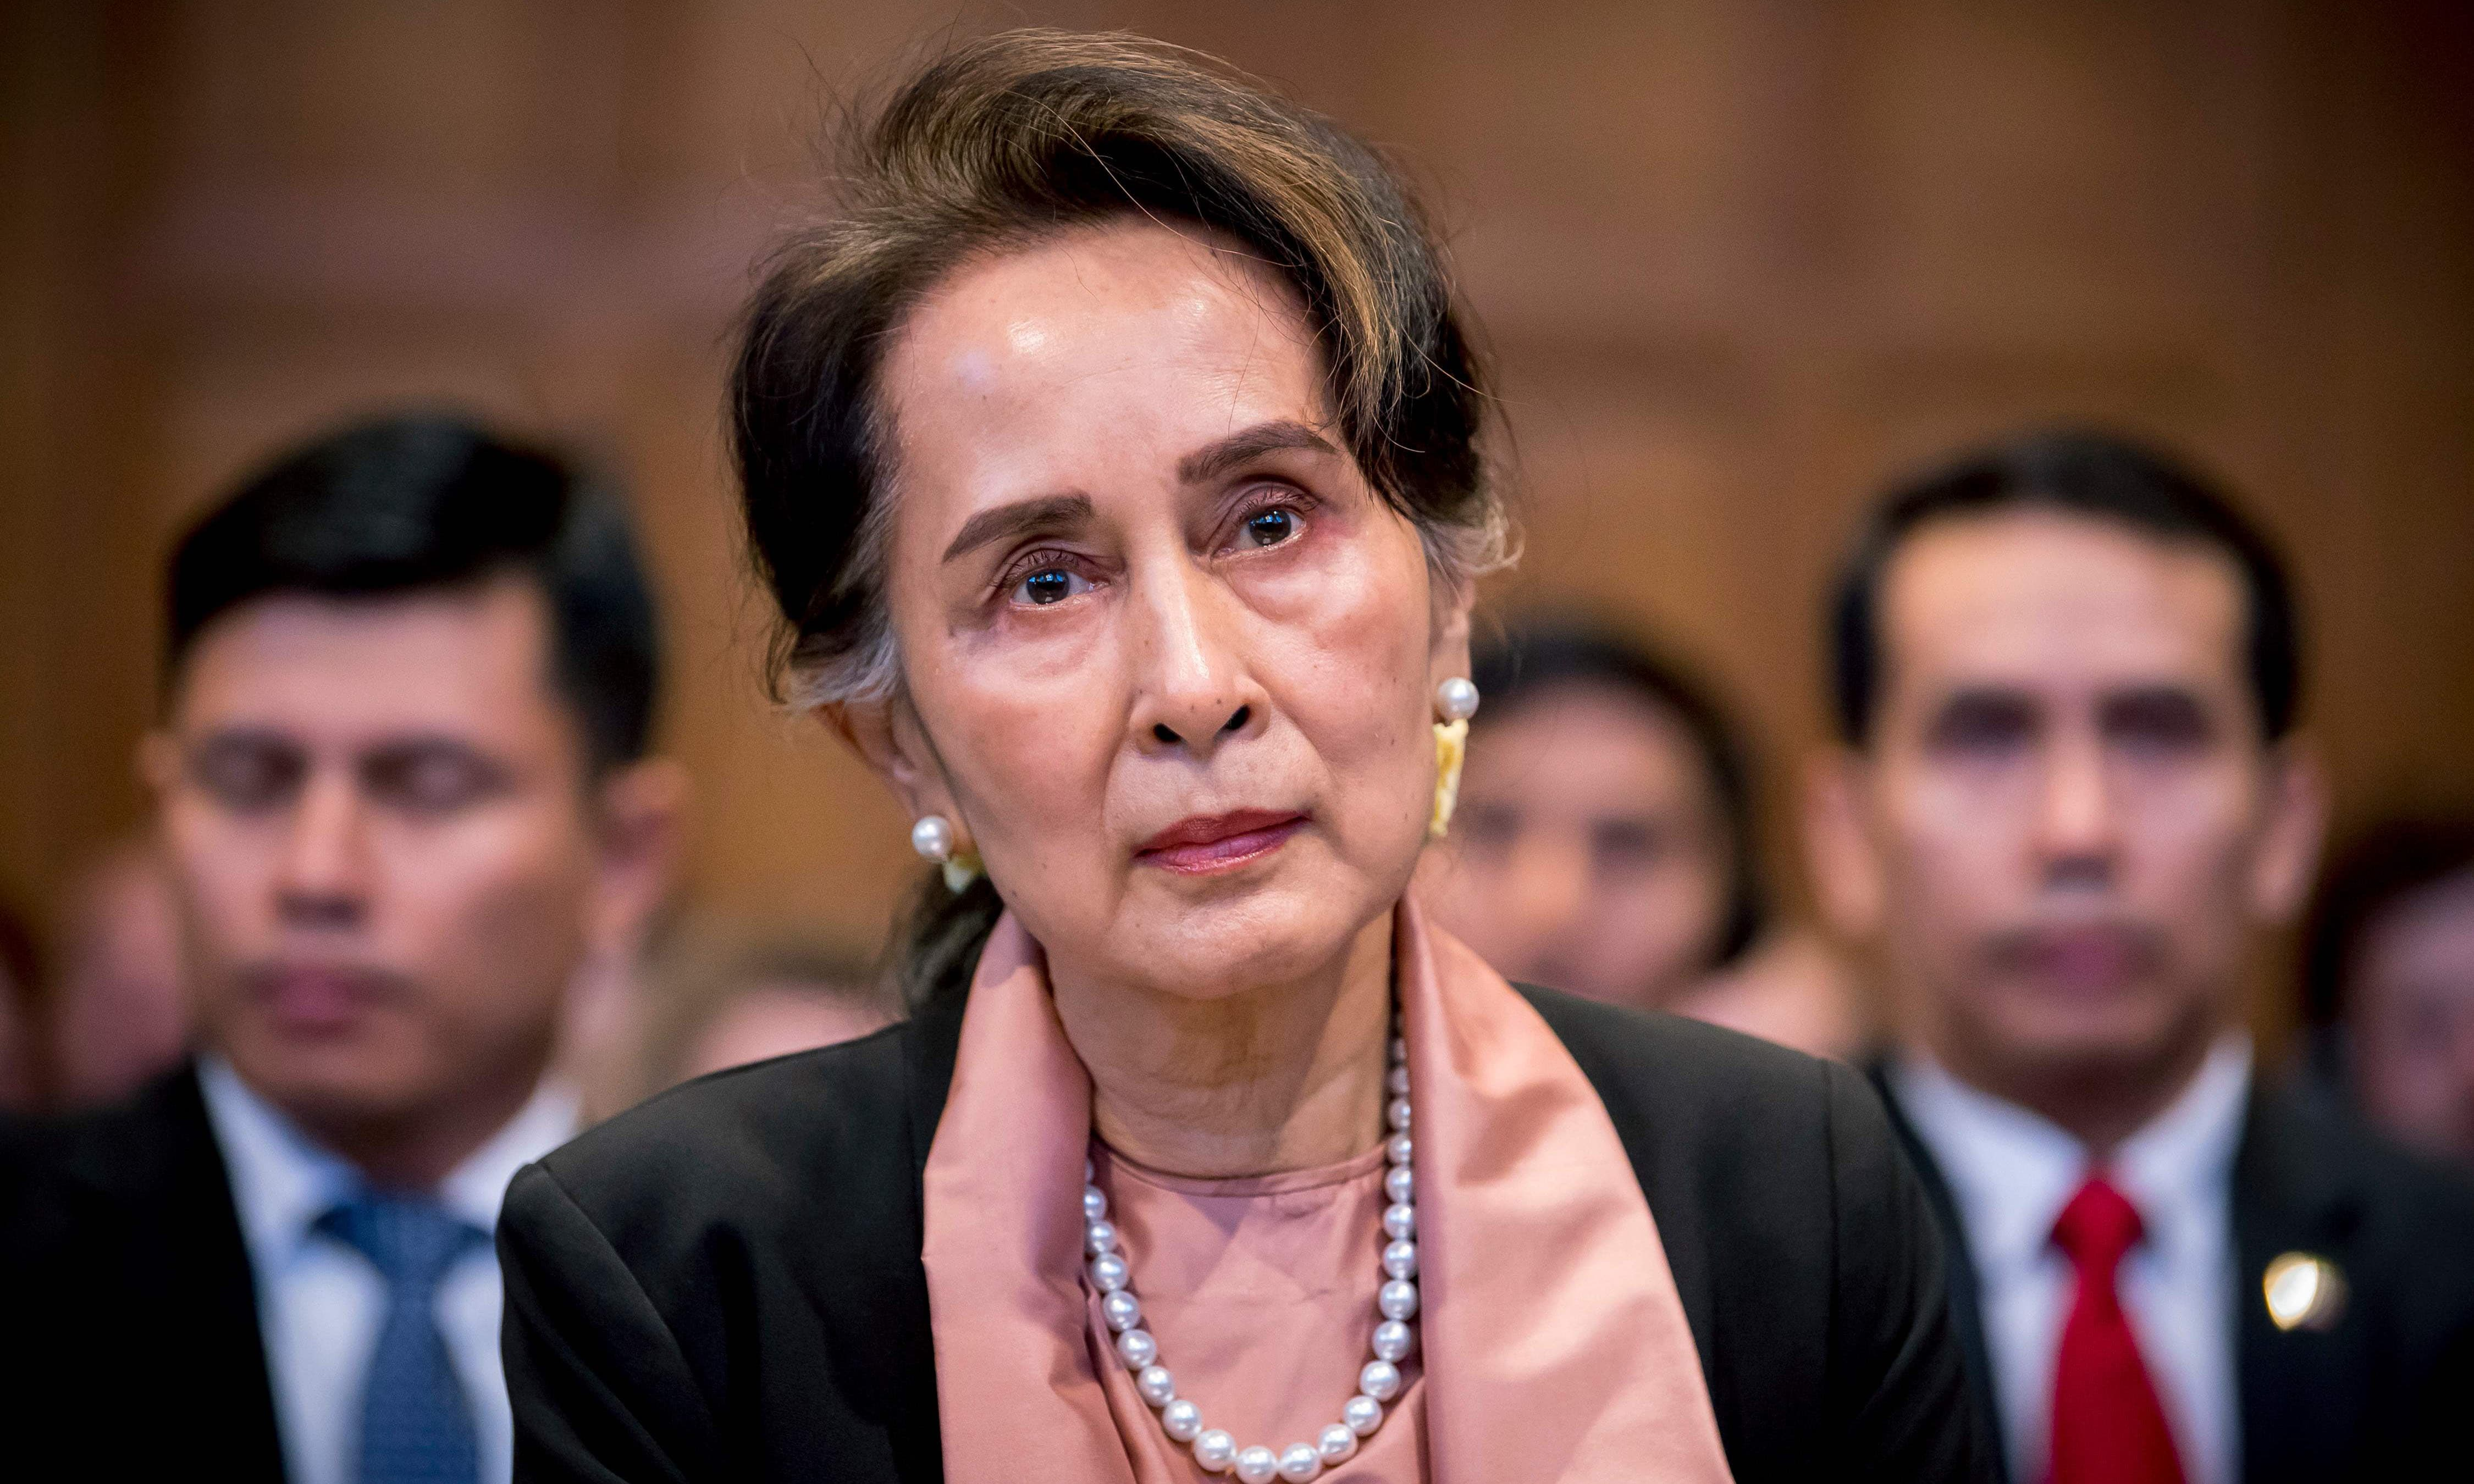 Myanmar State Counsellor Aung San Suu Kyi attends the start of a three-day hearing on the Rohingya genocide case before the United Nations International Court of Justice at the Peace Palace of The Hague. — AFP